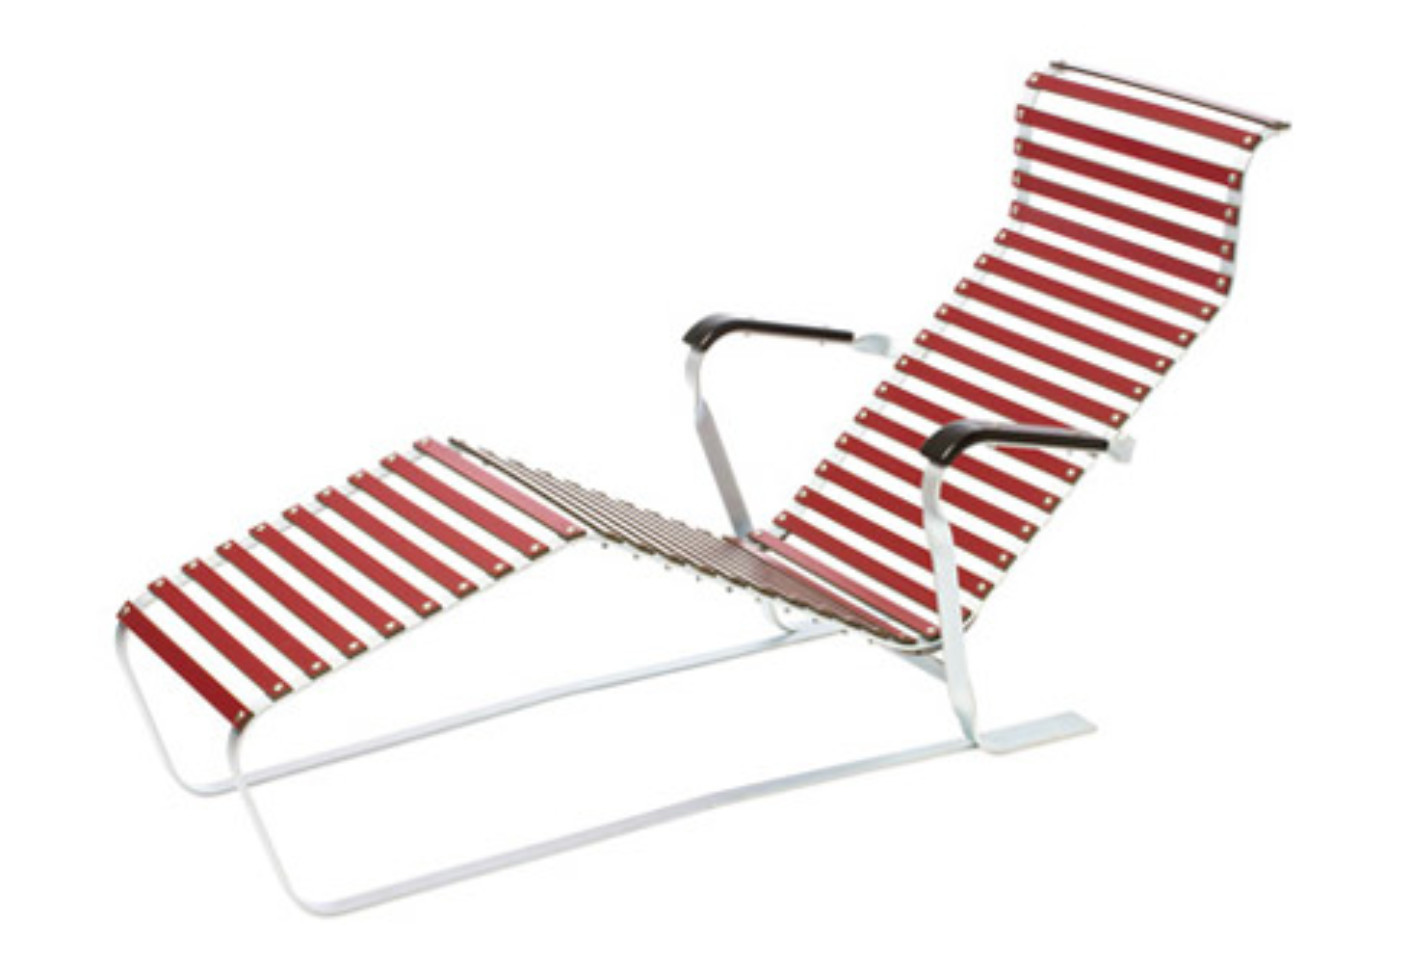 Breuer chaise longues model 1096 by embru stylepark for Chaise modele